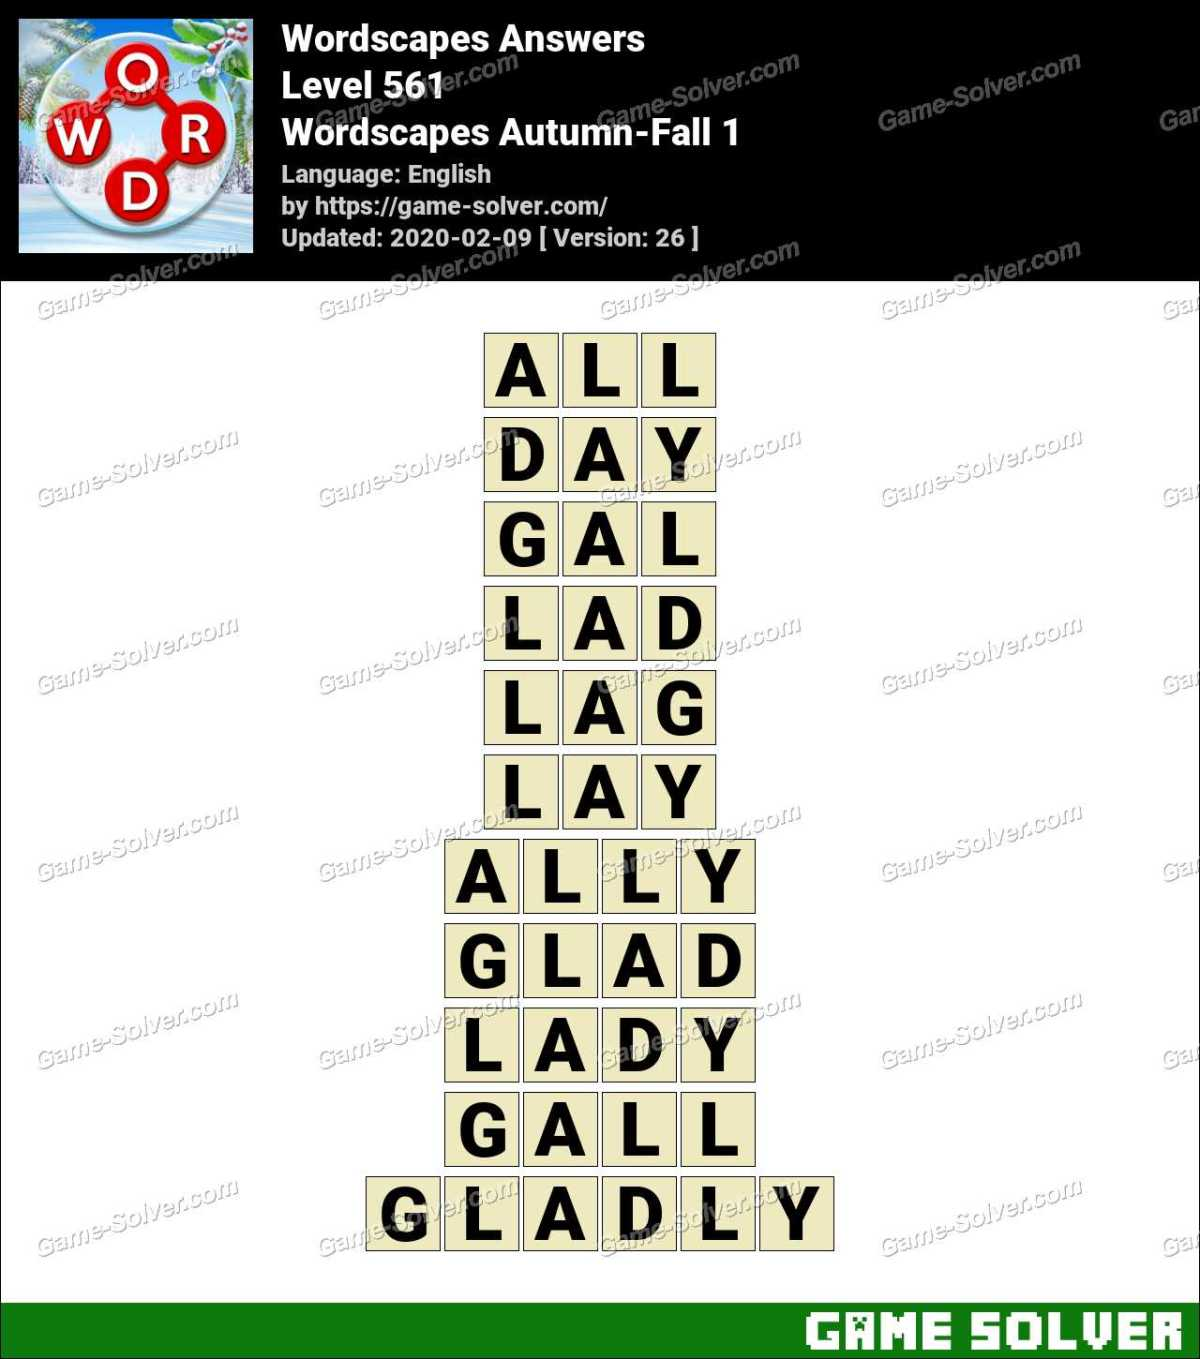 Wordscapes Autumn-Fall 1 Answers